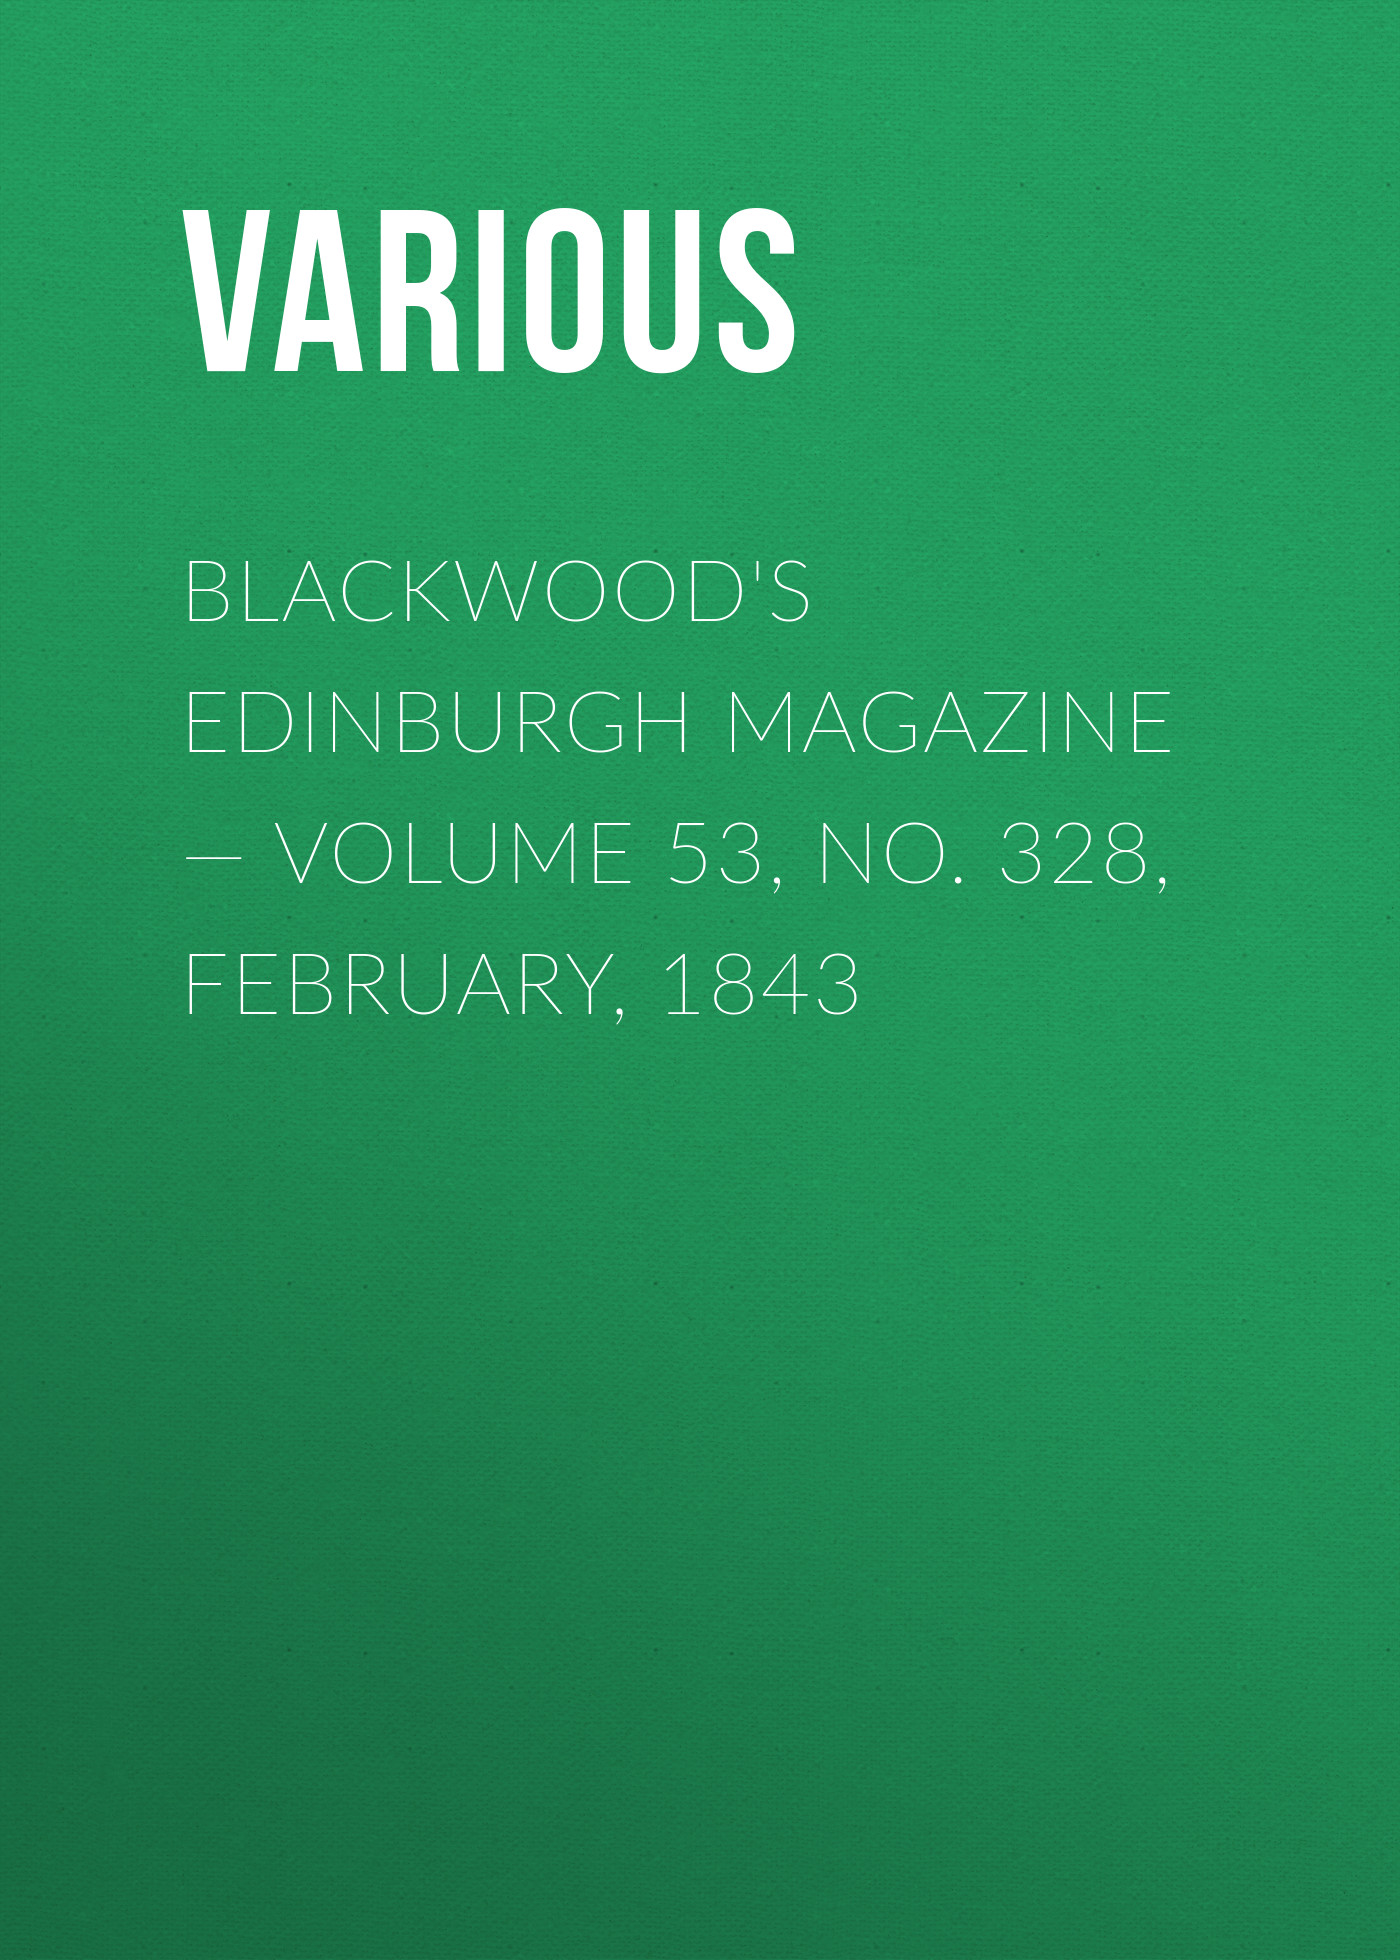 Blackwood's Edinburgh Magazine — Volume 53, No. 328, February, 1843